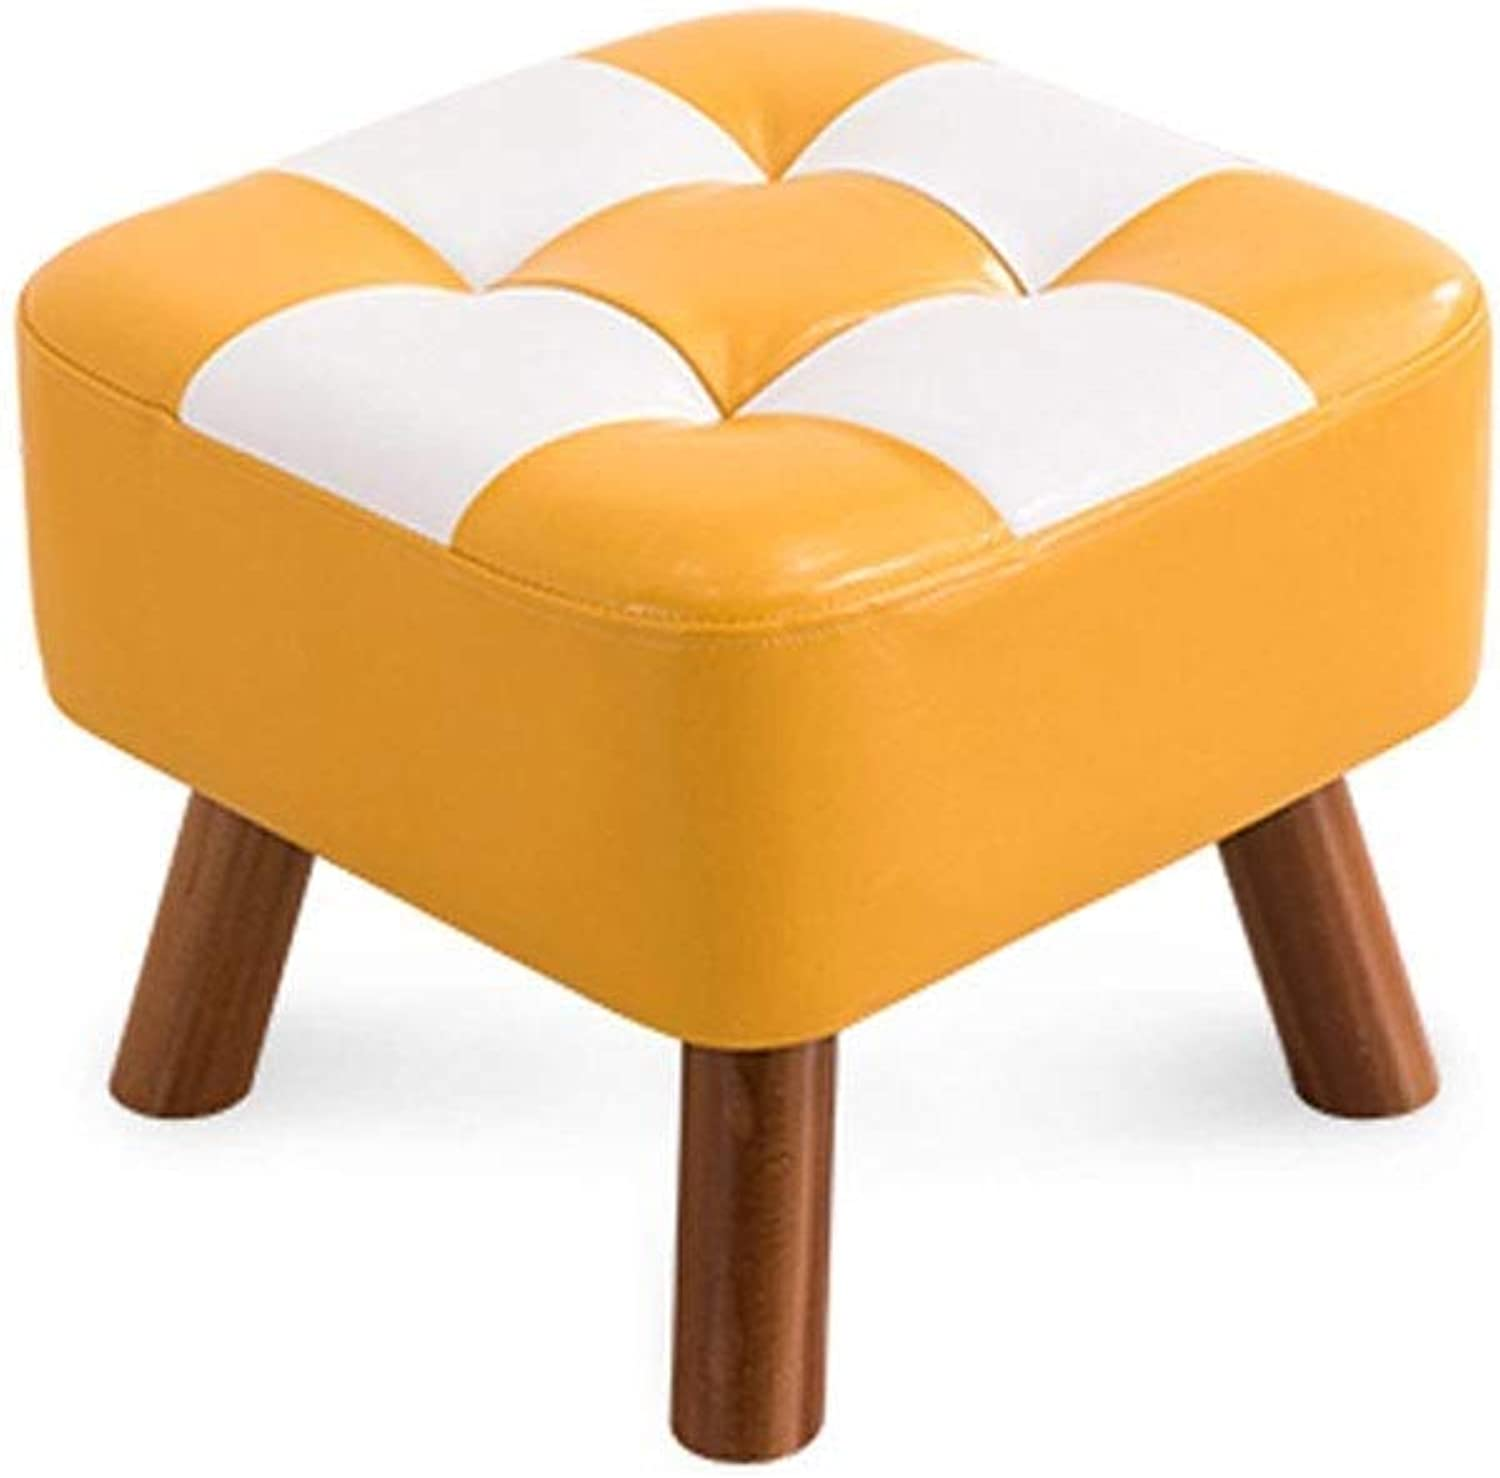 Footstool Solid Wood Square Stool Small Stool Change shoes Bench Low Stool Sofa Stool Dining Chair Family Haiming (color   Small Square Stool)